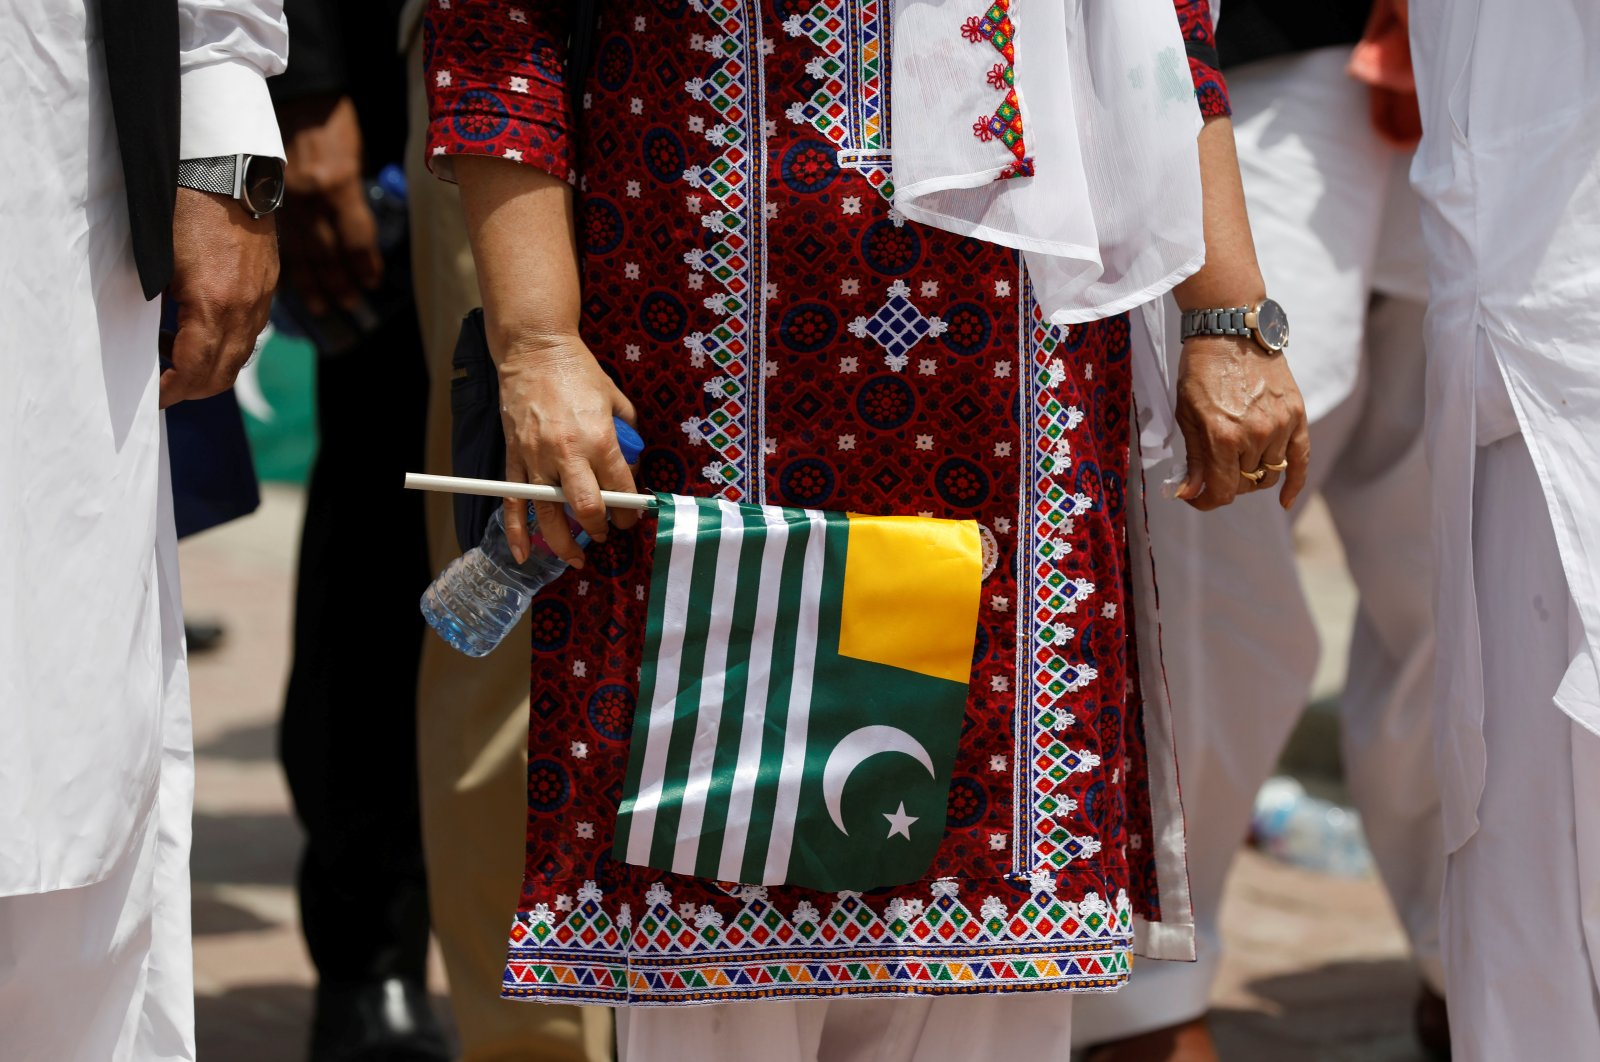 """A woman holds a flag as she observes one minute of silence with others to mark the """"Day of Exploitation in Kashmir,"""" one year after the Indian government split the state of Jammu and Kashmir into two federally controlled territories and took away its special privileges, during a walk in Karachi, Pakistan, Aug. 5, 2020. (Reuters Photo)"""